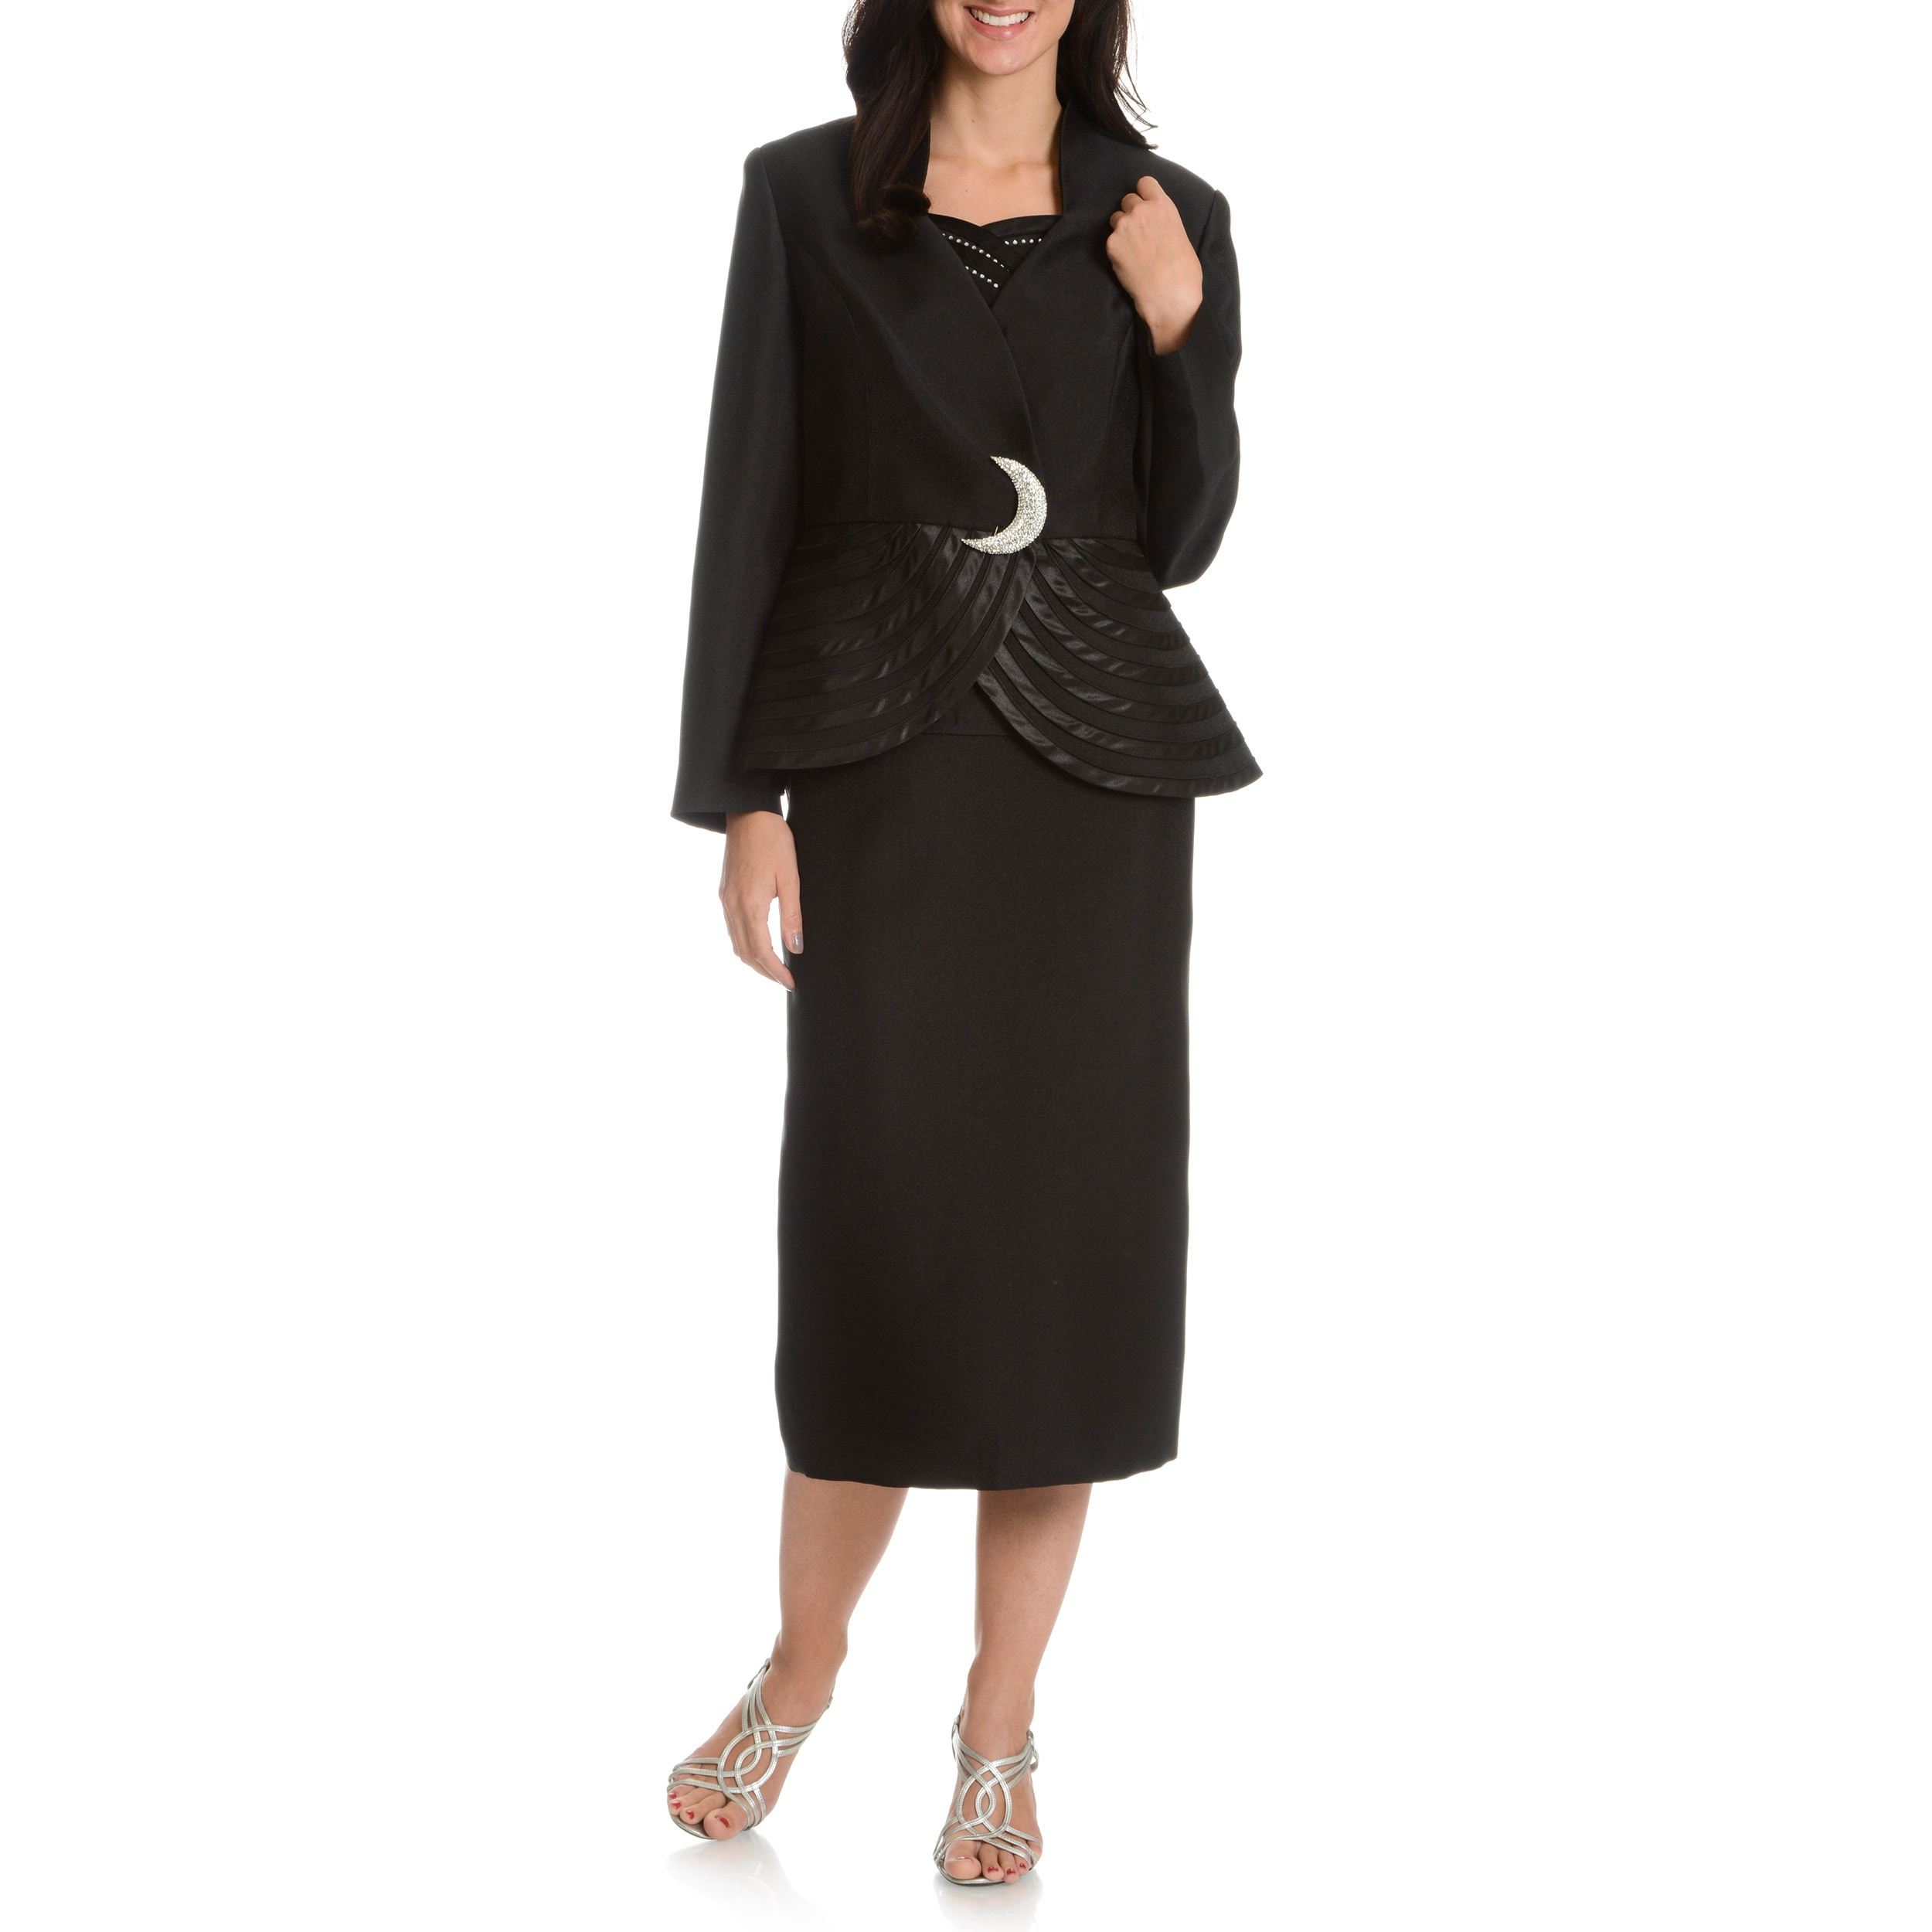 df008285e Shop Giovanna Collection Women's 3-piece Skirt Suit - Ships To Canada -  Overstock - 10180598